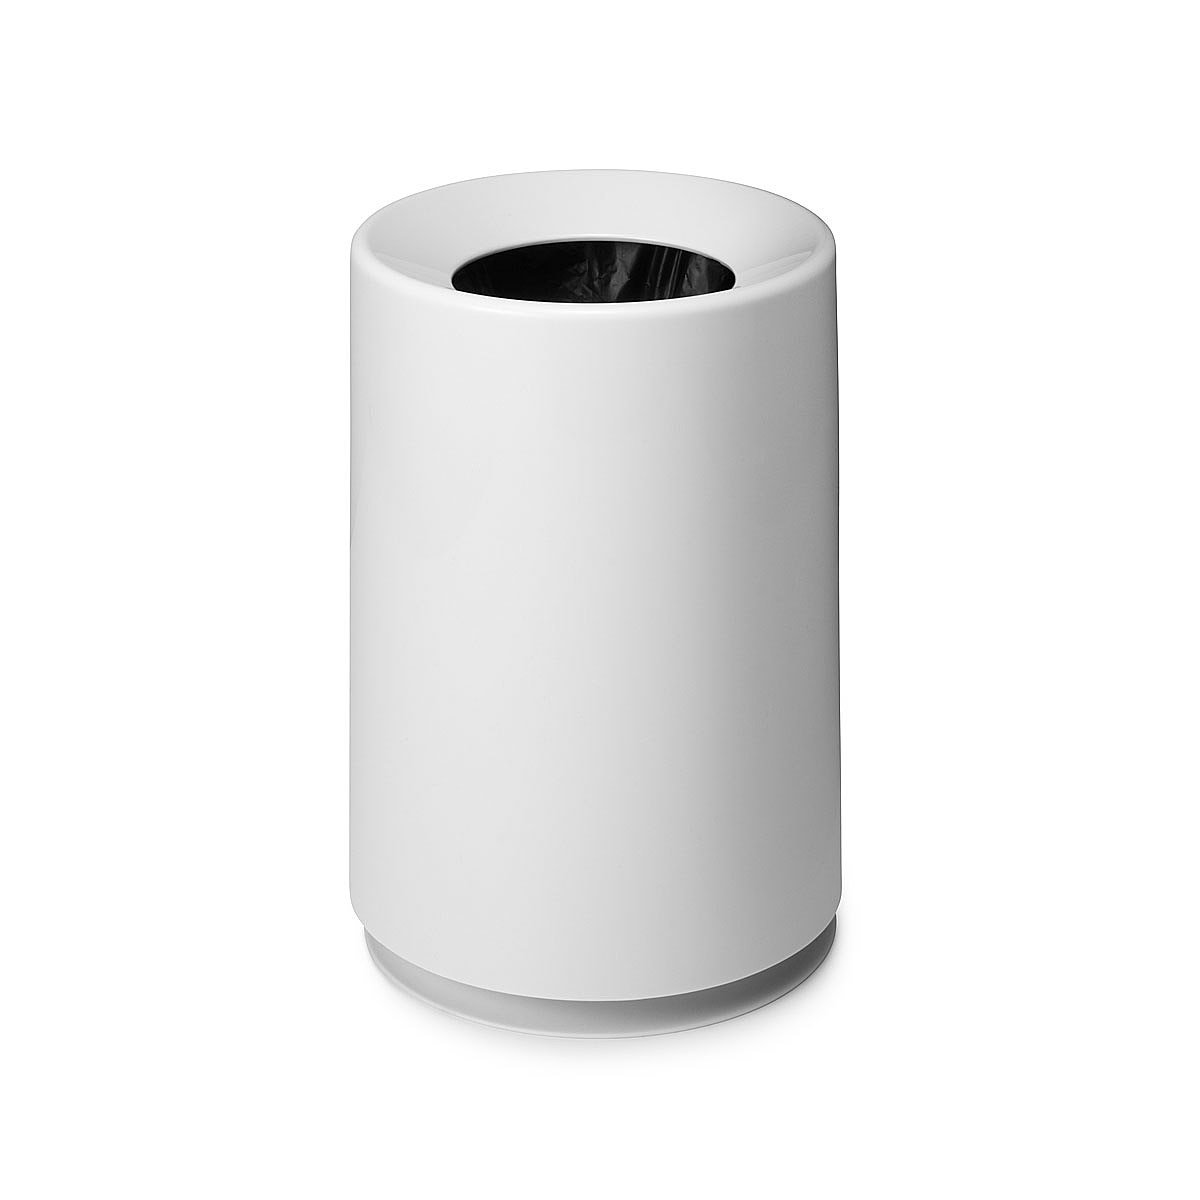 White Bathroom Garbage Cans classic tubelor trash can | decorative trash cans | uncommongoods